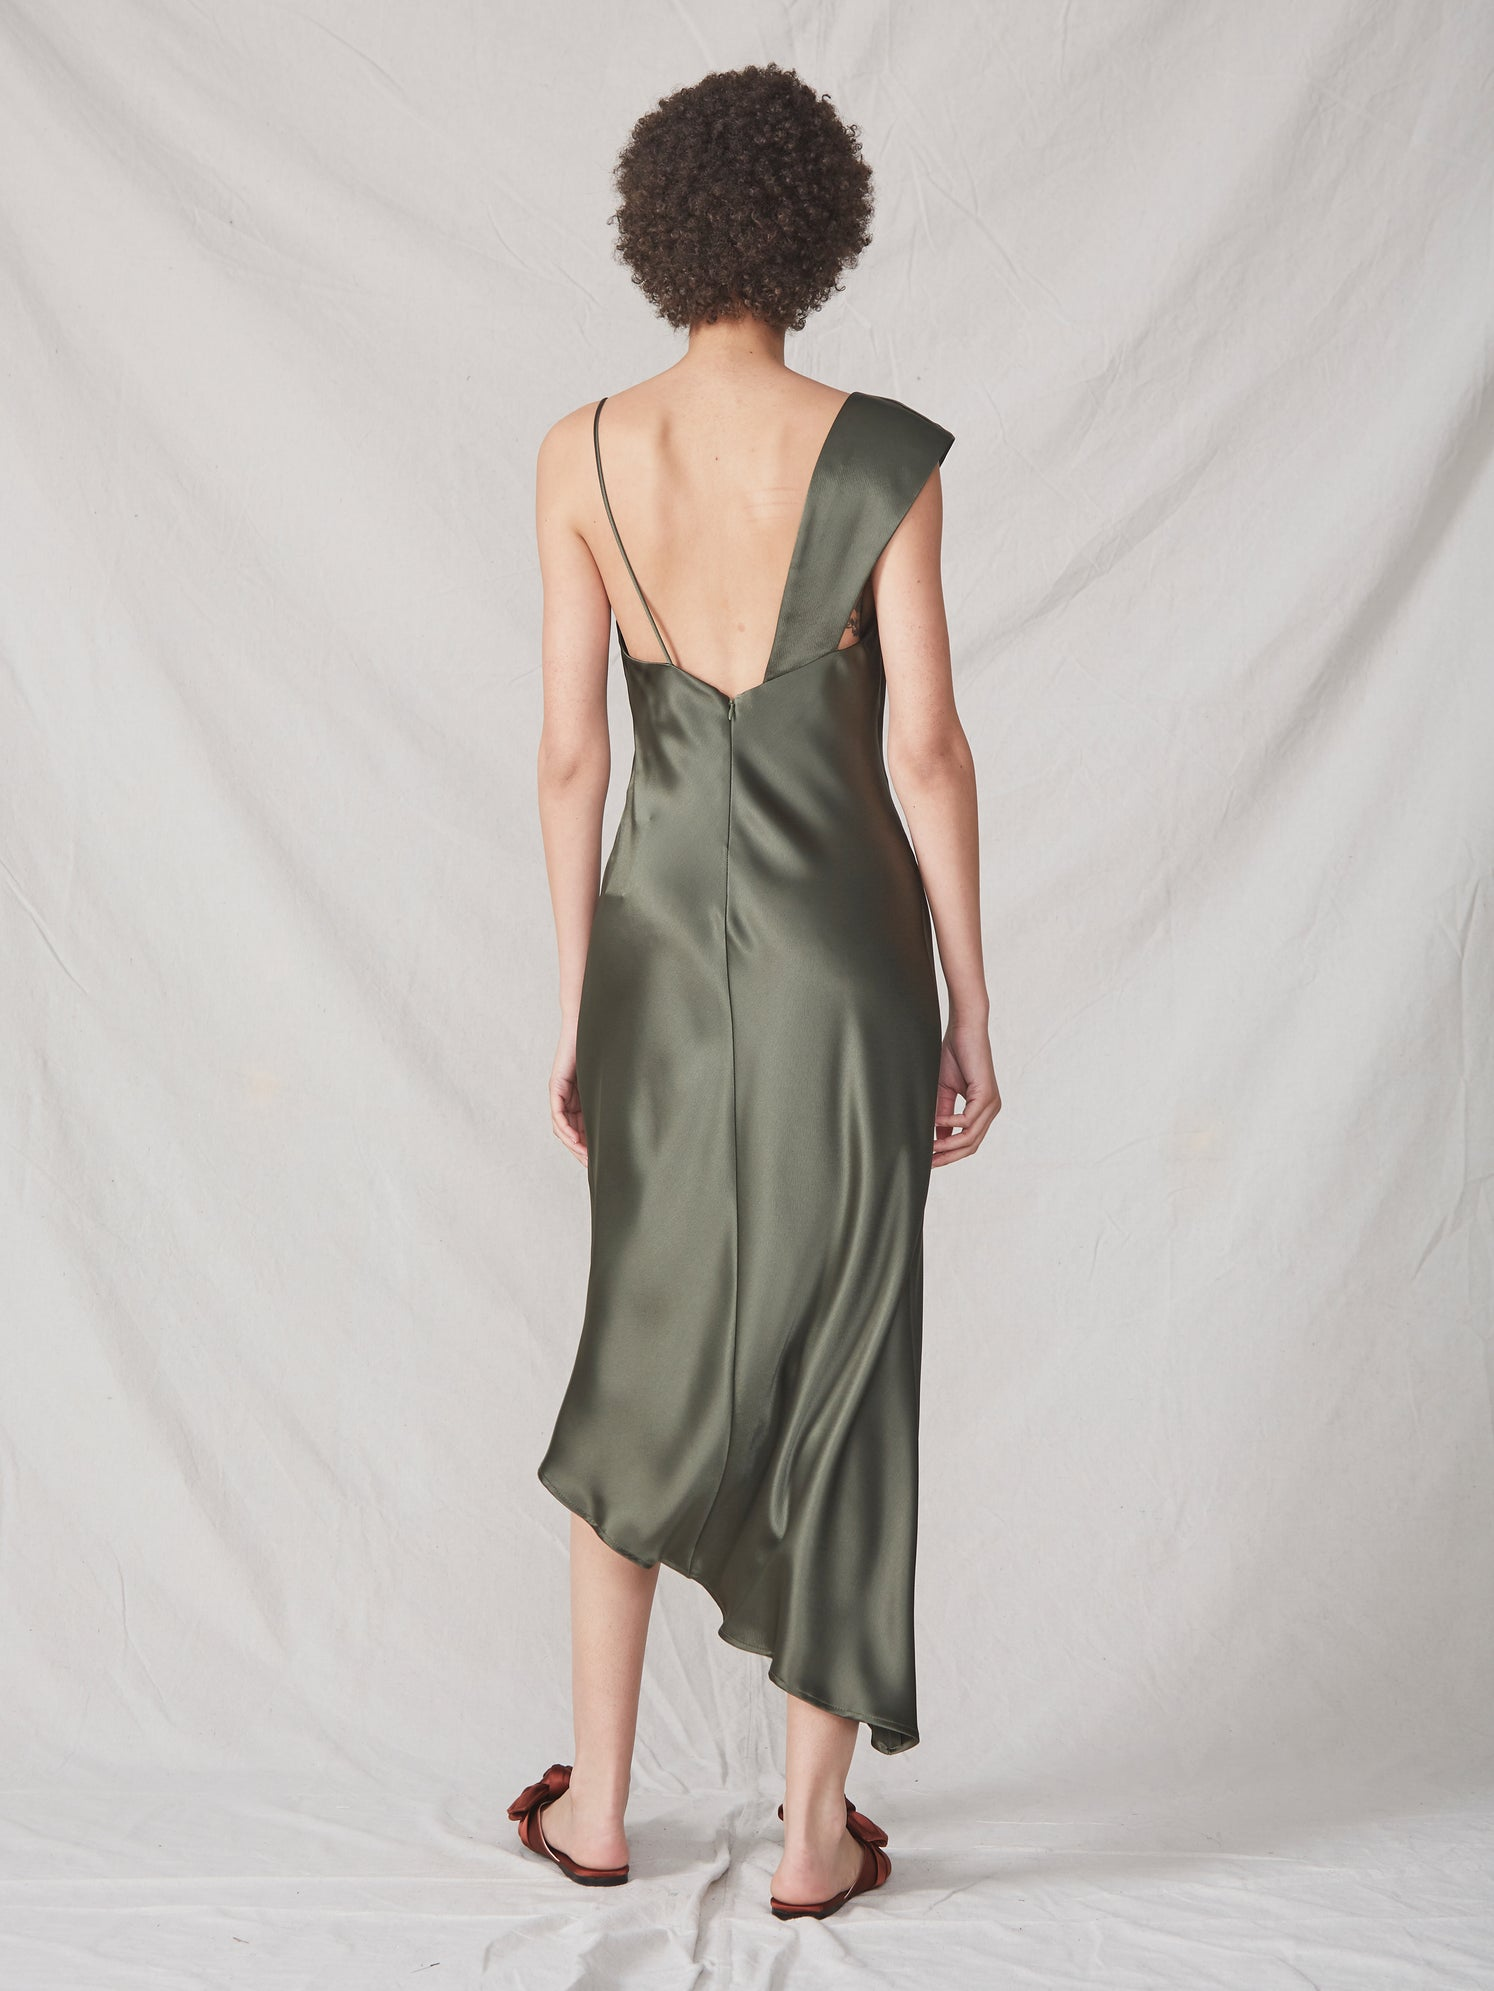 Satin luxe one shoulder spaghetti strap asymmetrical cowl slit dress Alternate